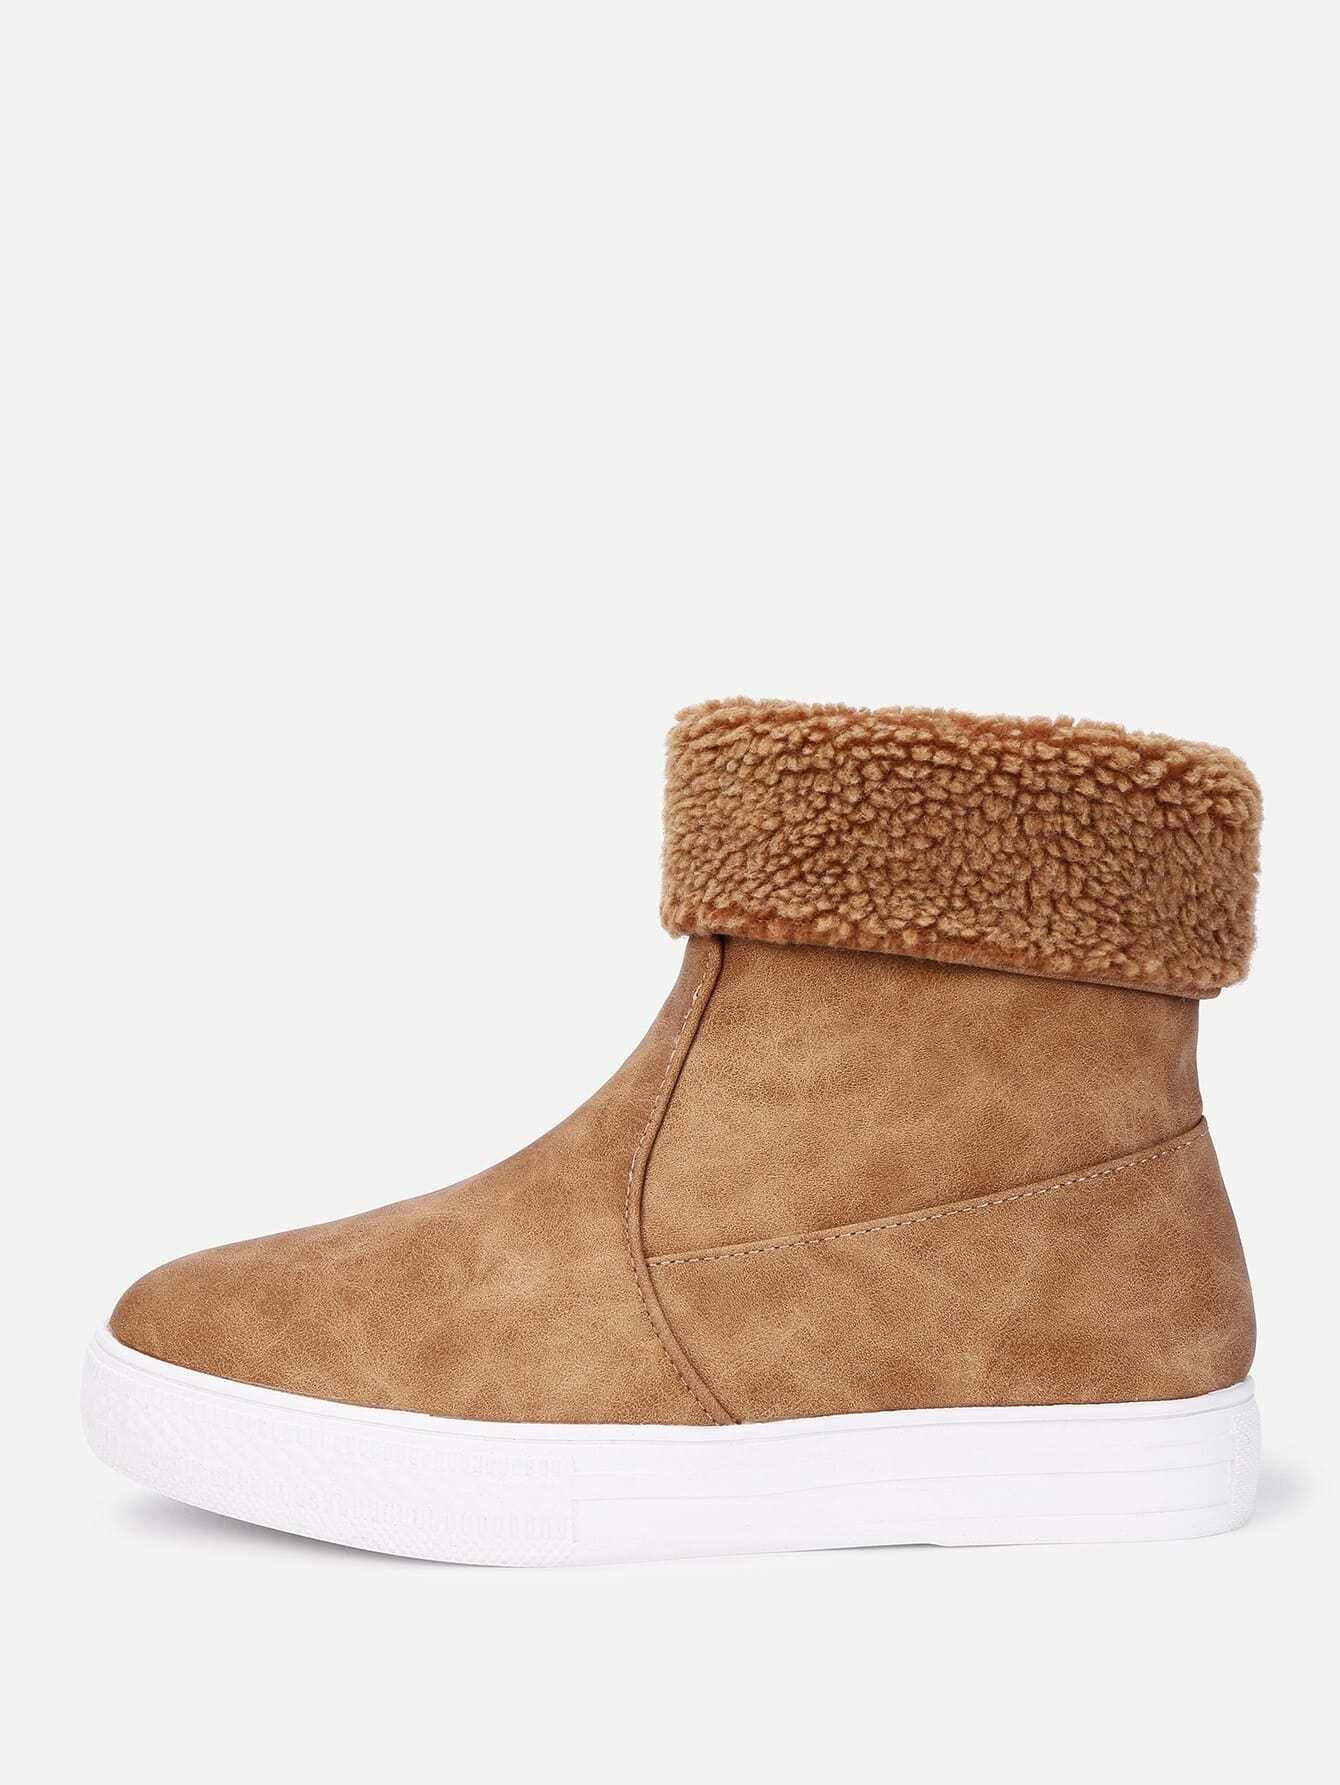 Round Toe Flat Suede Ankle Boots